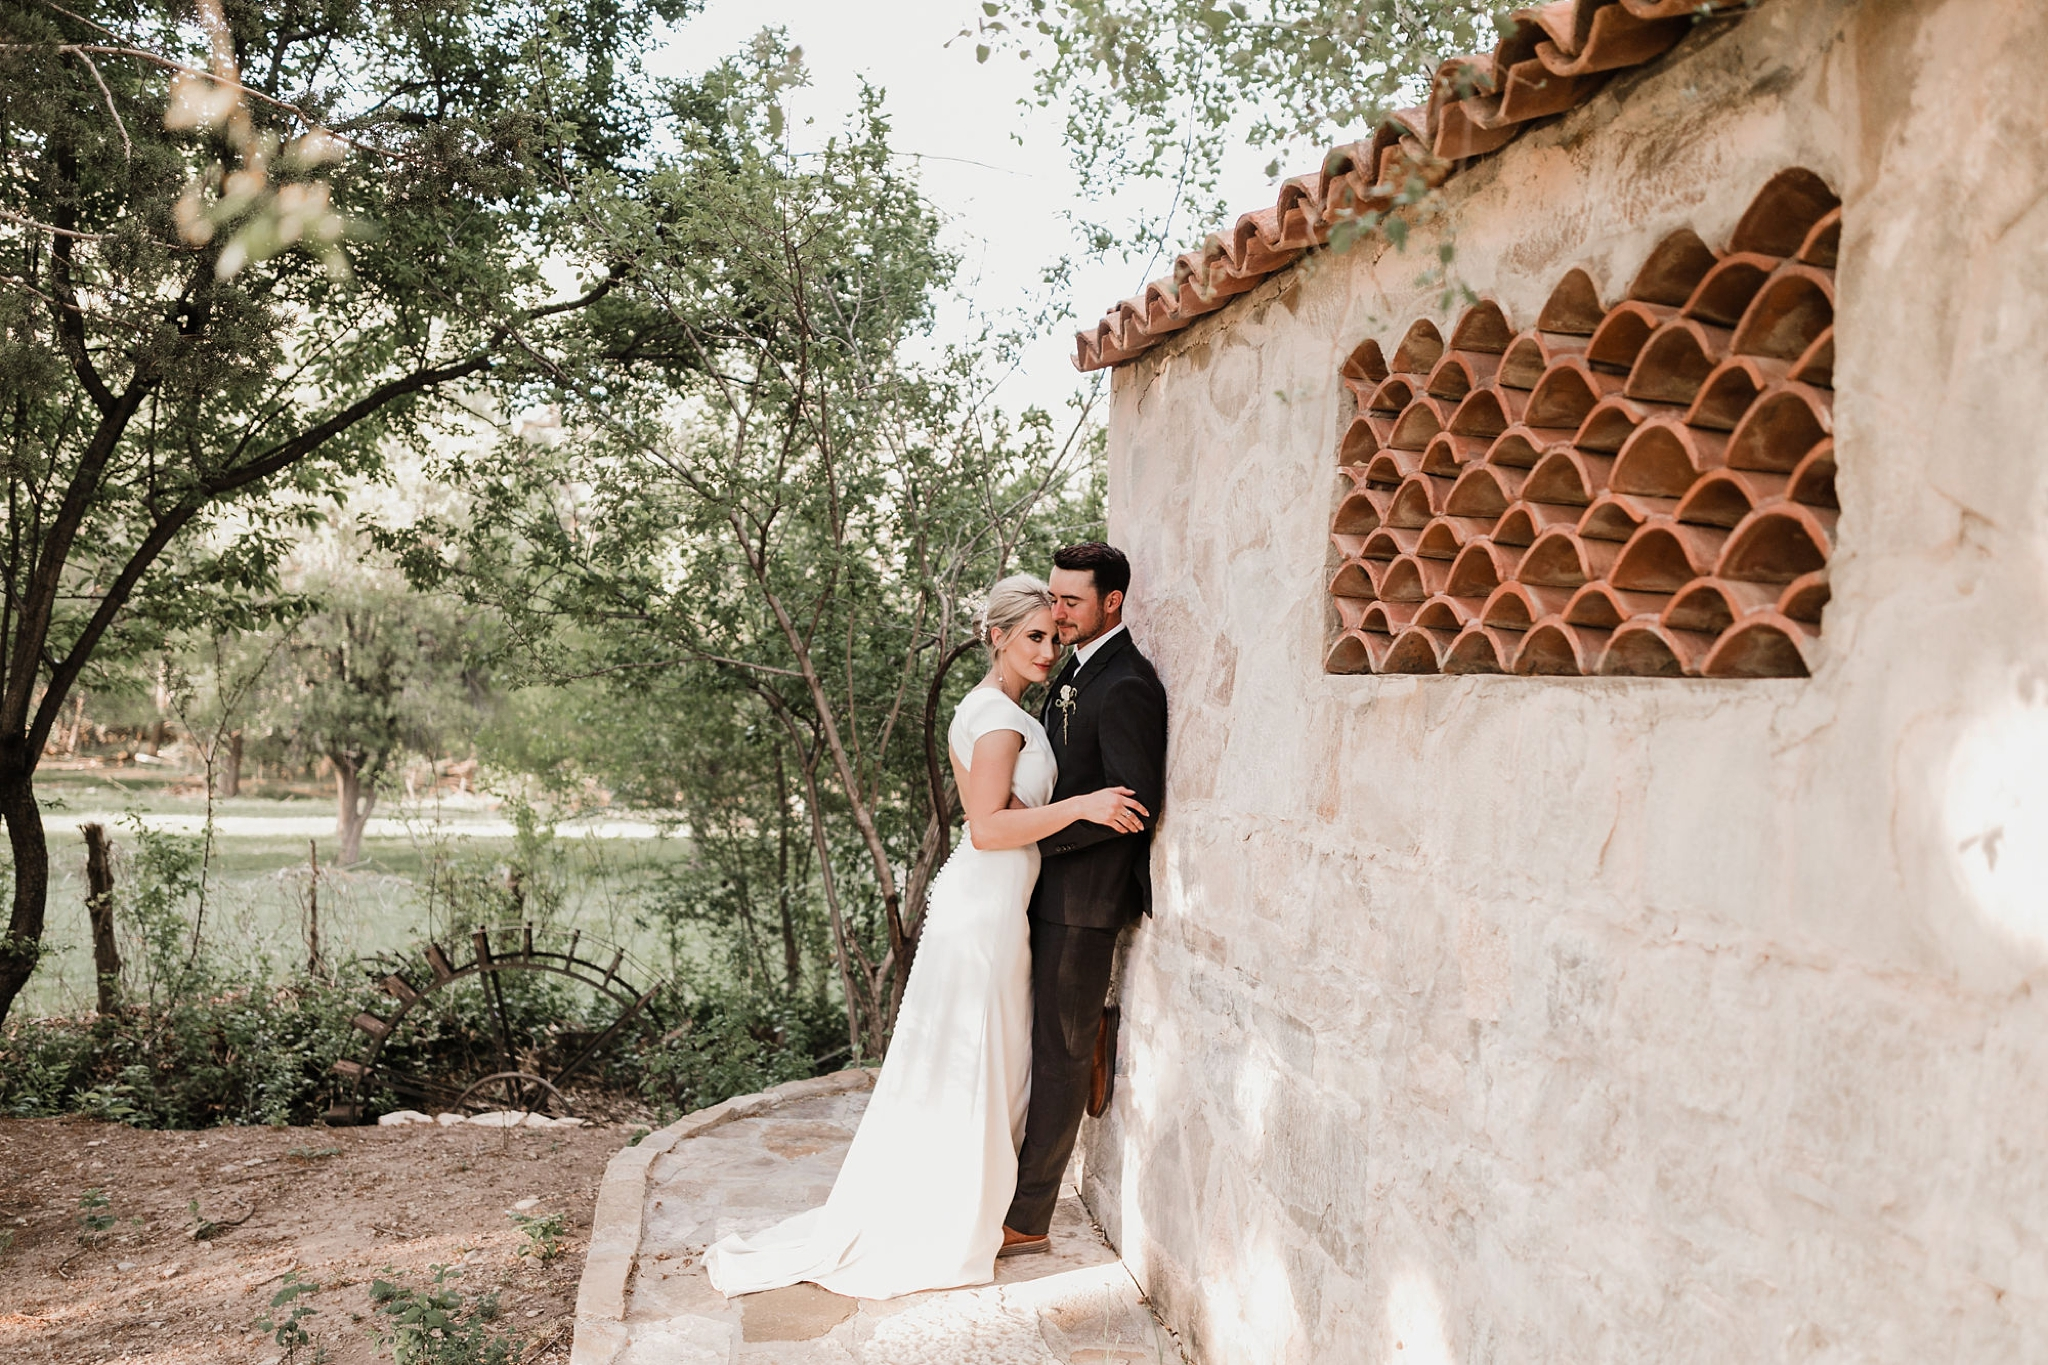 Alicia+lucia+photography+-+albuquerque+wedding+photographer+-+santa+fe+wedding+photography+-+new+mexico+wedding+photographer+-+new+mexico+wedding+-+ruidoso+wedding+-+southern+new+mexico+wedding+-+san+patricio+wedding+-+spring+wedding_0114.jpg